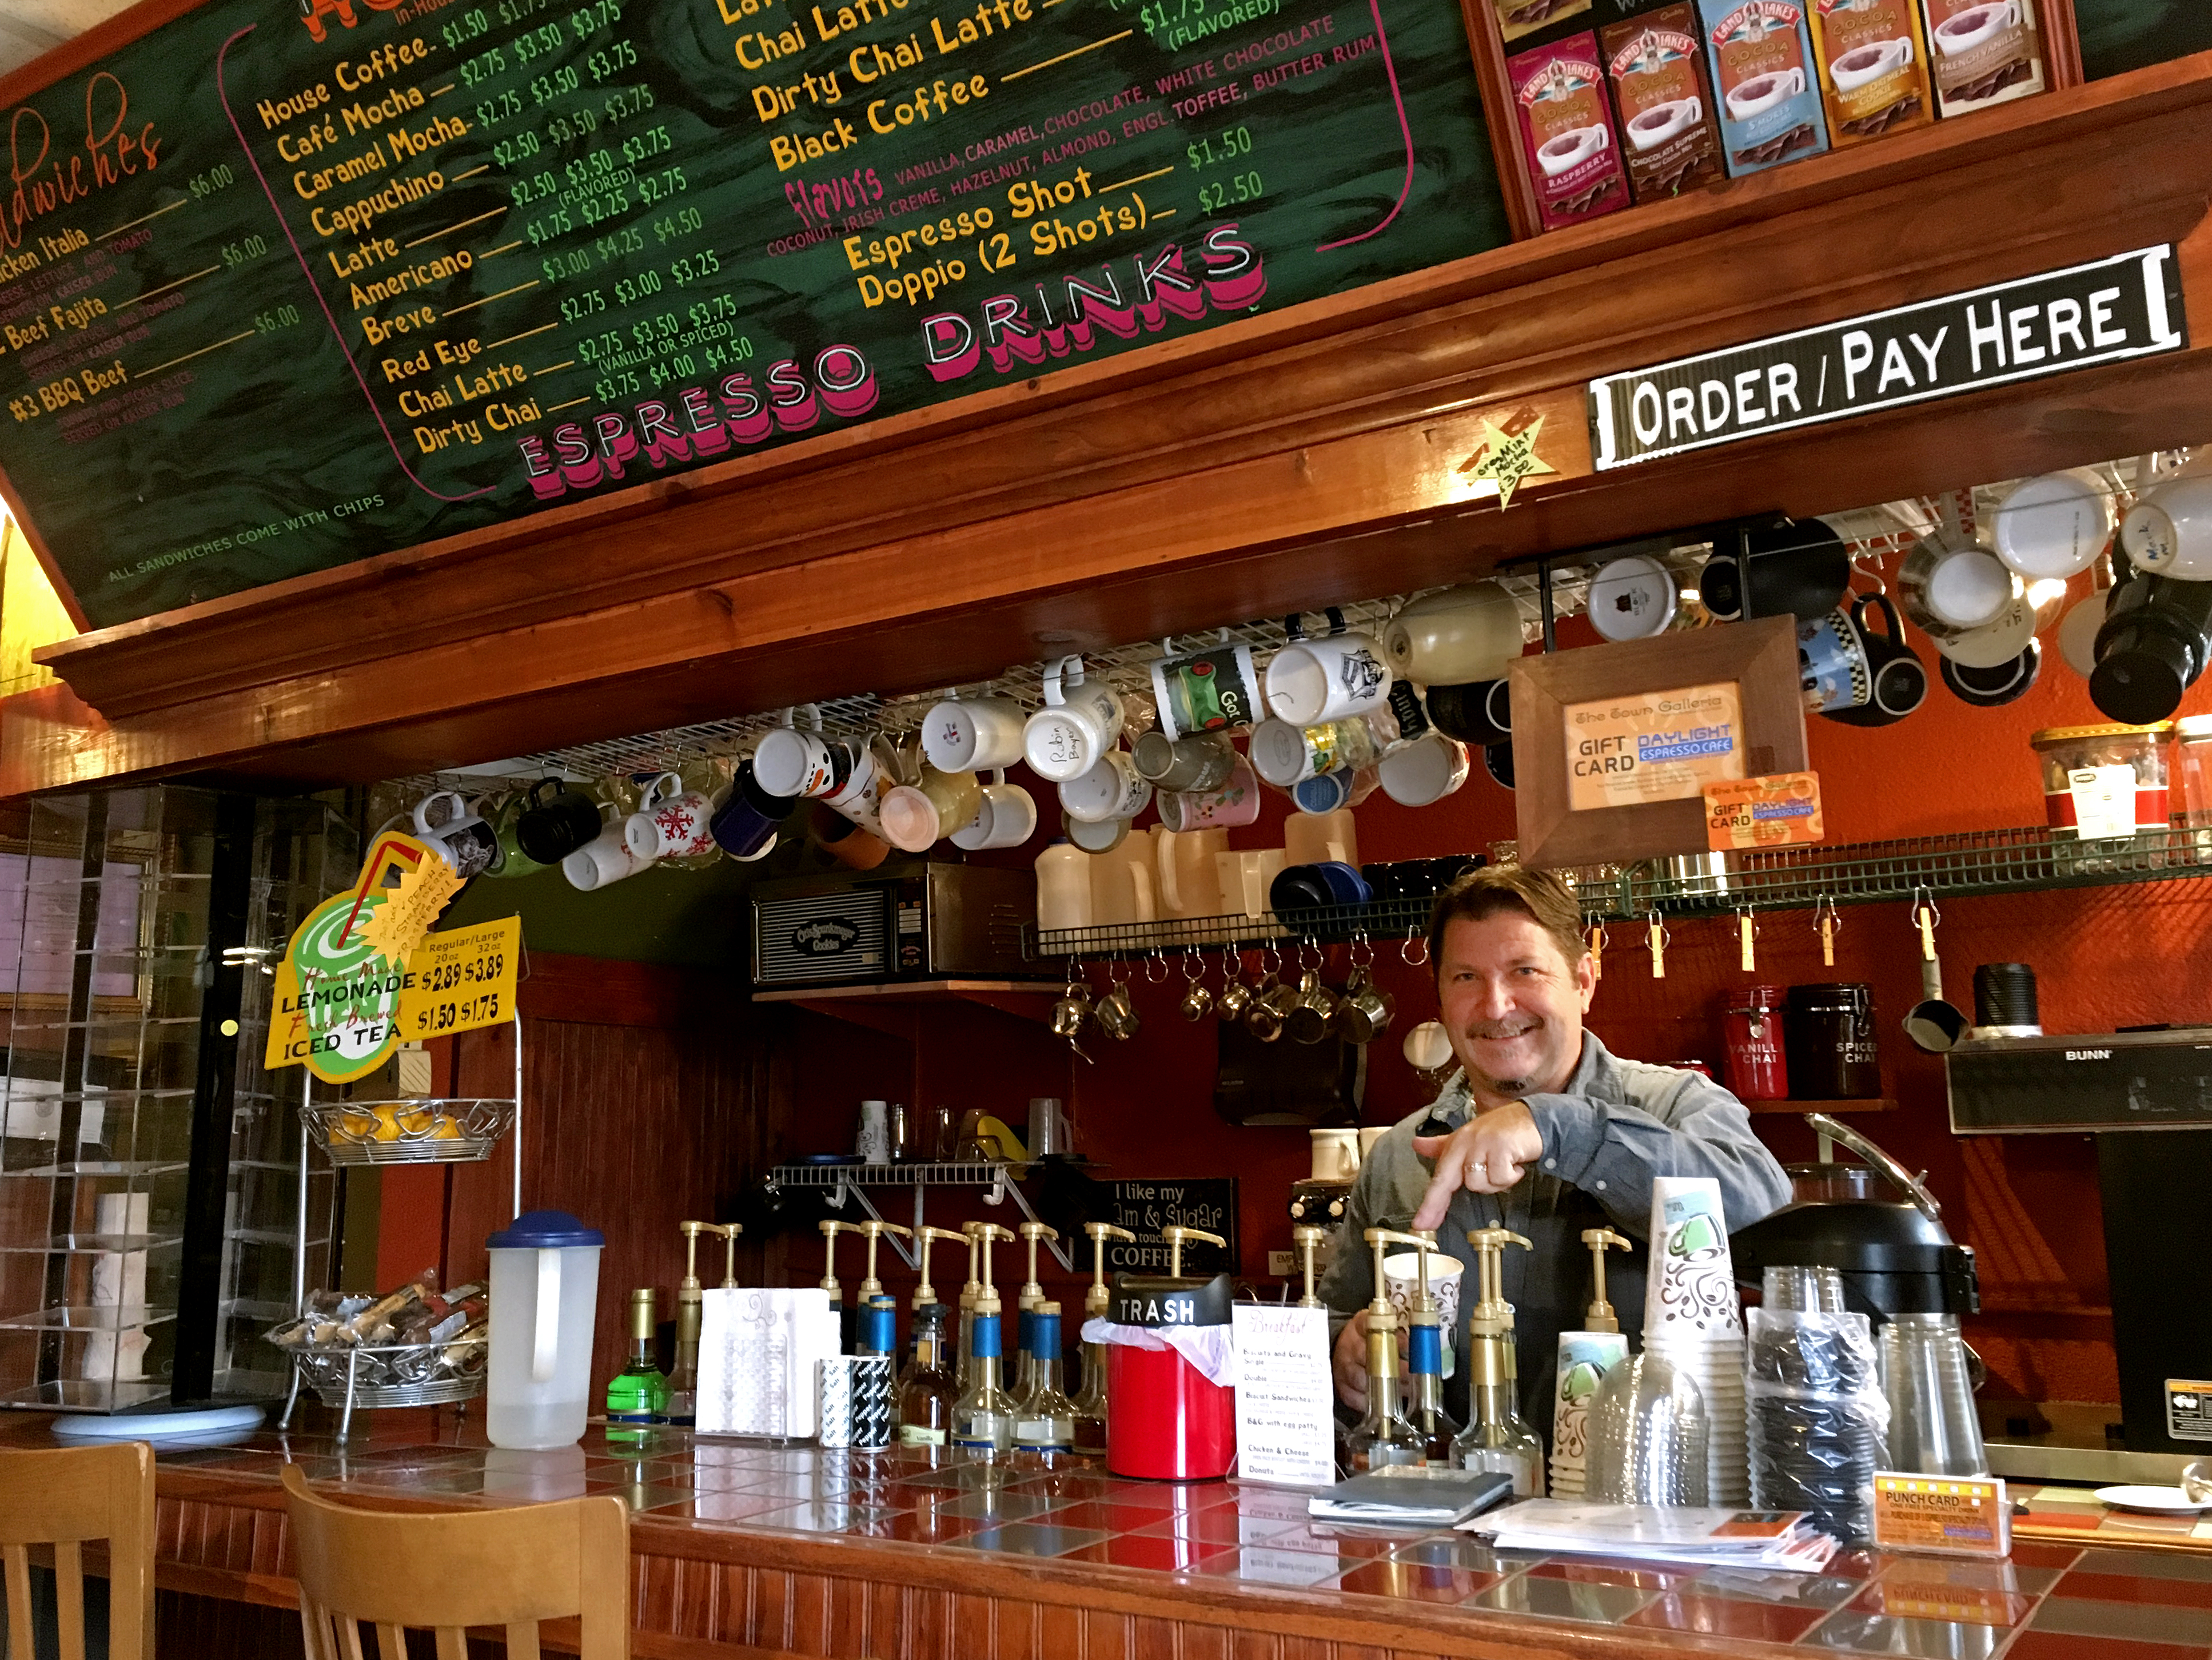 Mike Langrehr has owned the local Daylight Espresso Café since 2008 at 715 Eighth St. in downtown Baldwin City. Image by Chad Phillips.